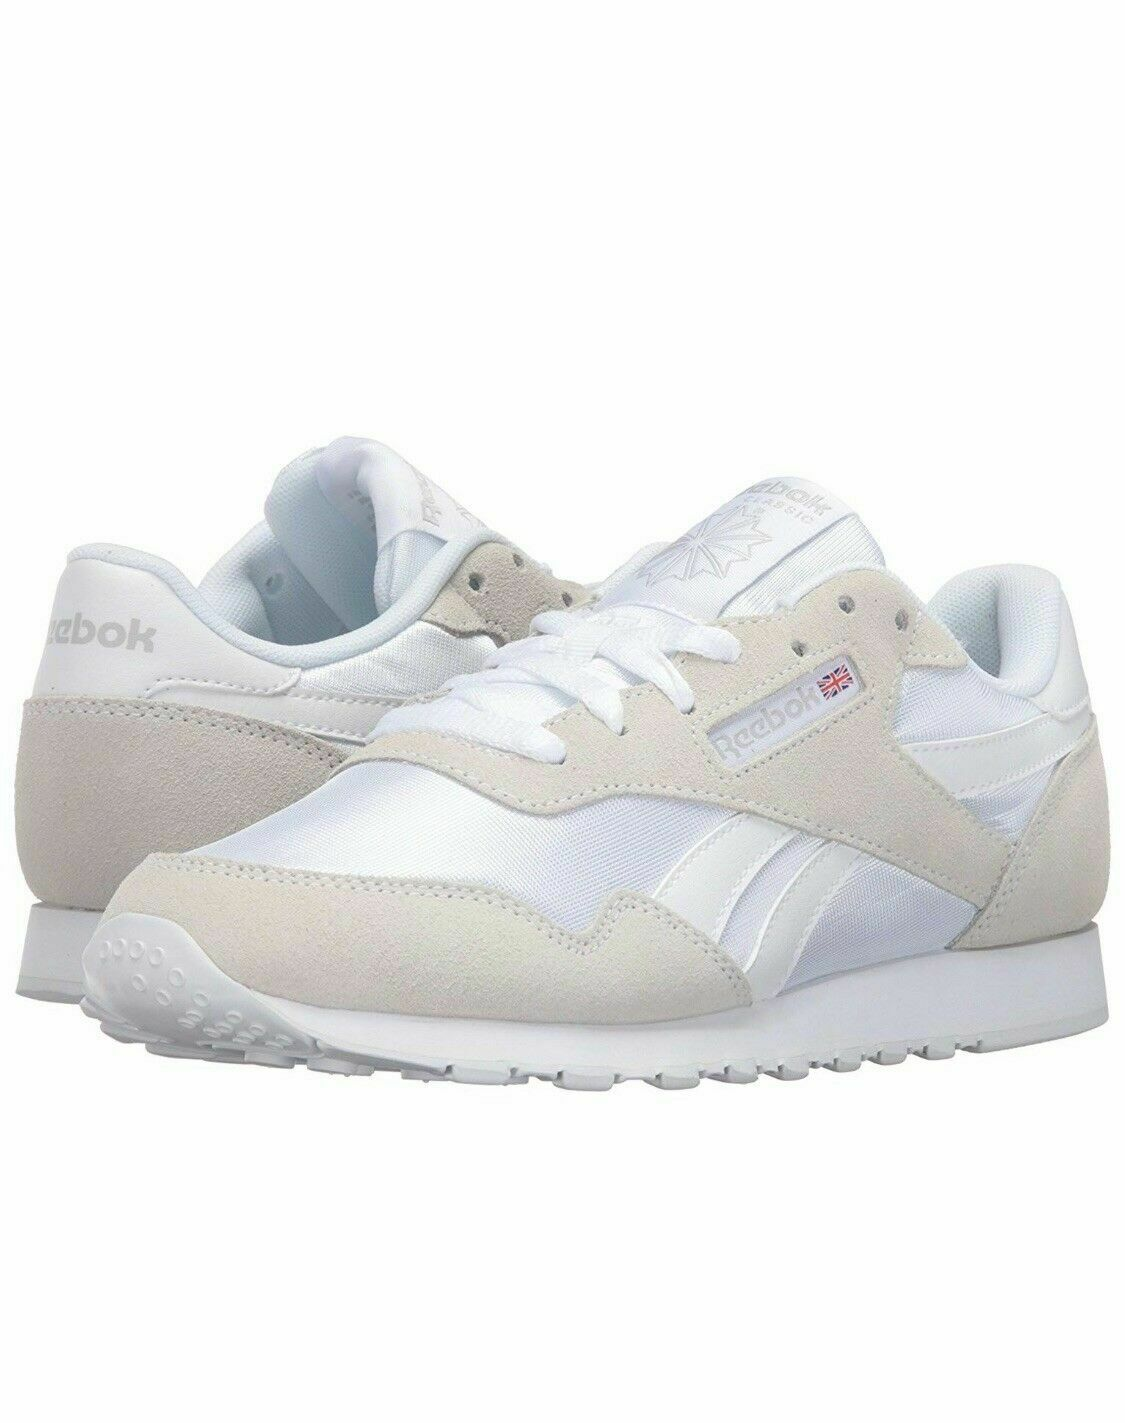 Reebok Women's Royal Nylon Athletic shoes White jogging running gym sport A